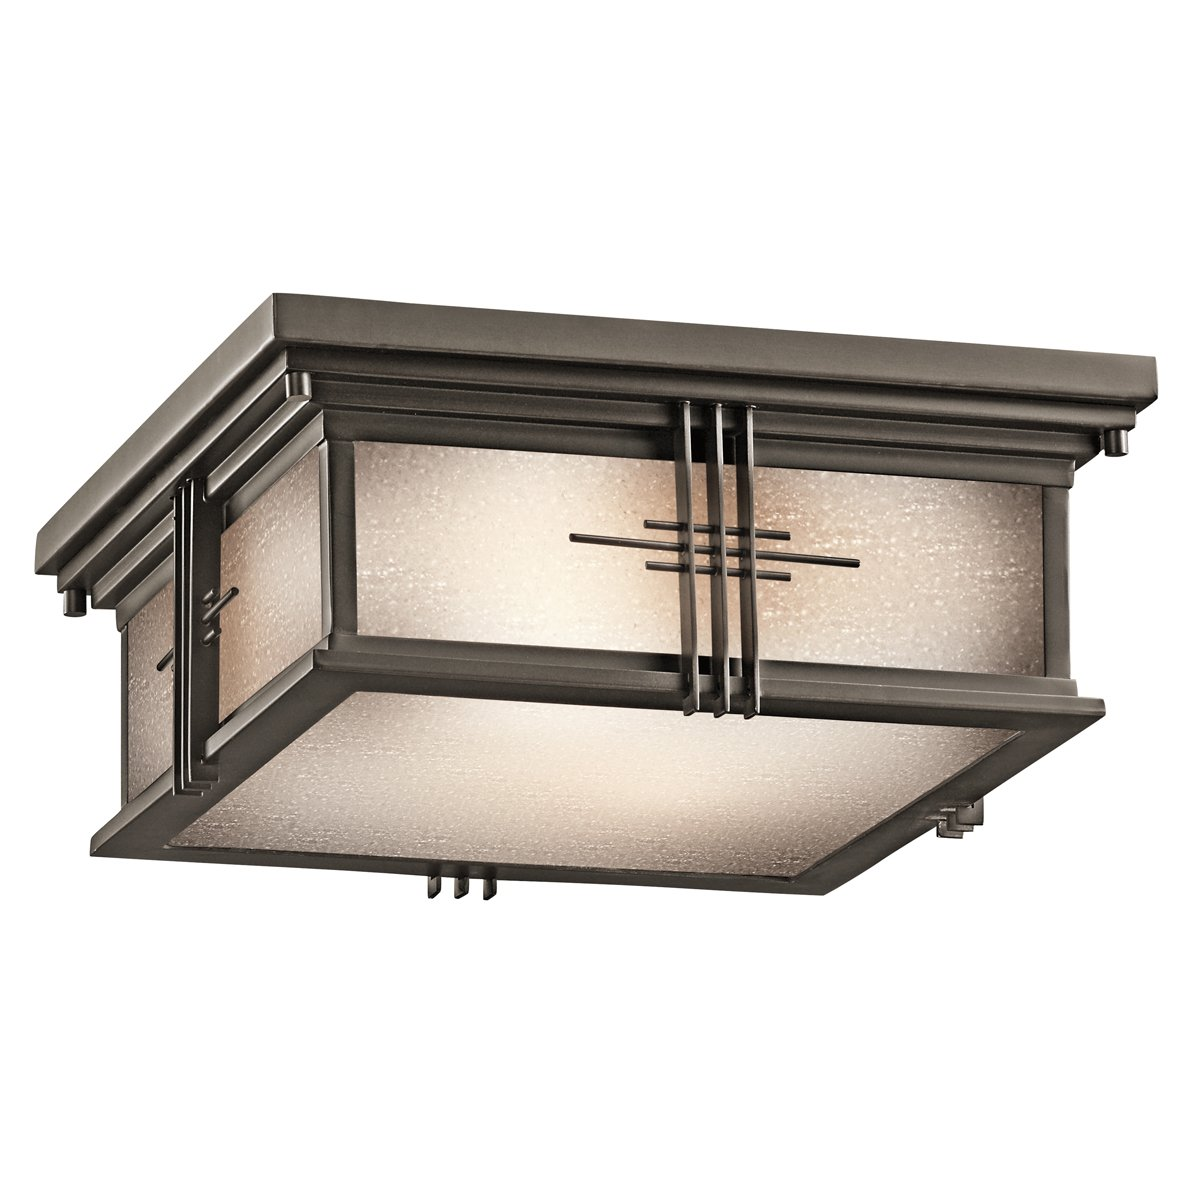 oz portman square lt exterior flush mount olde bronze  - oz portman square lt exterior flush mount olde bronze finish withetched seedy glass  close to ceiling light fixtures  amazoncom